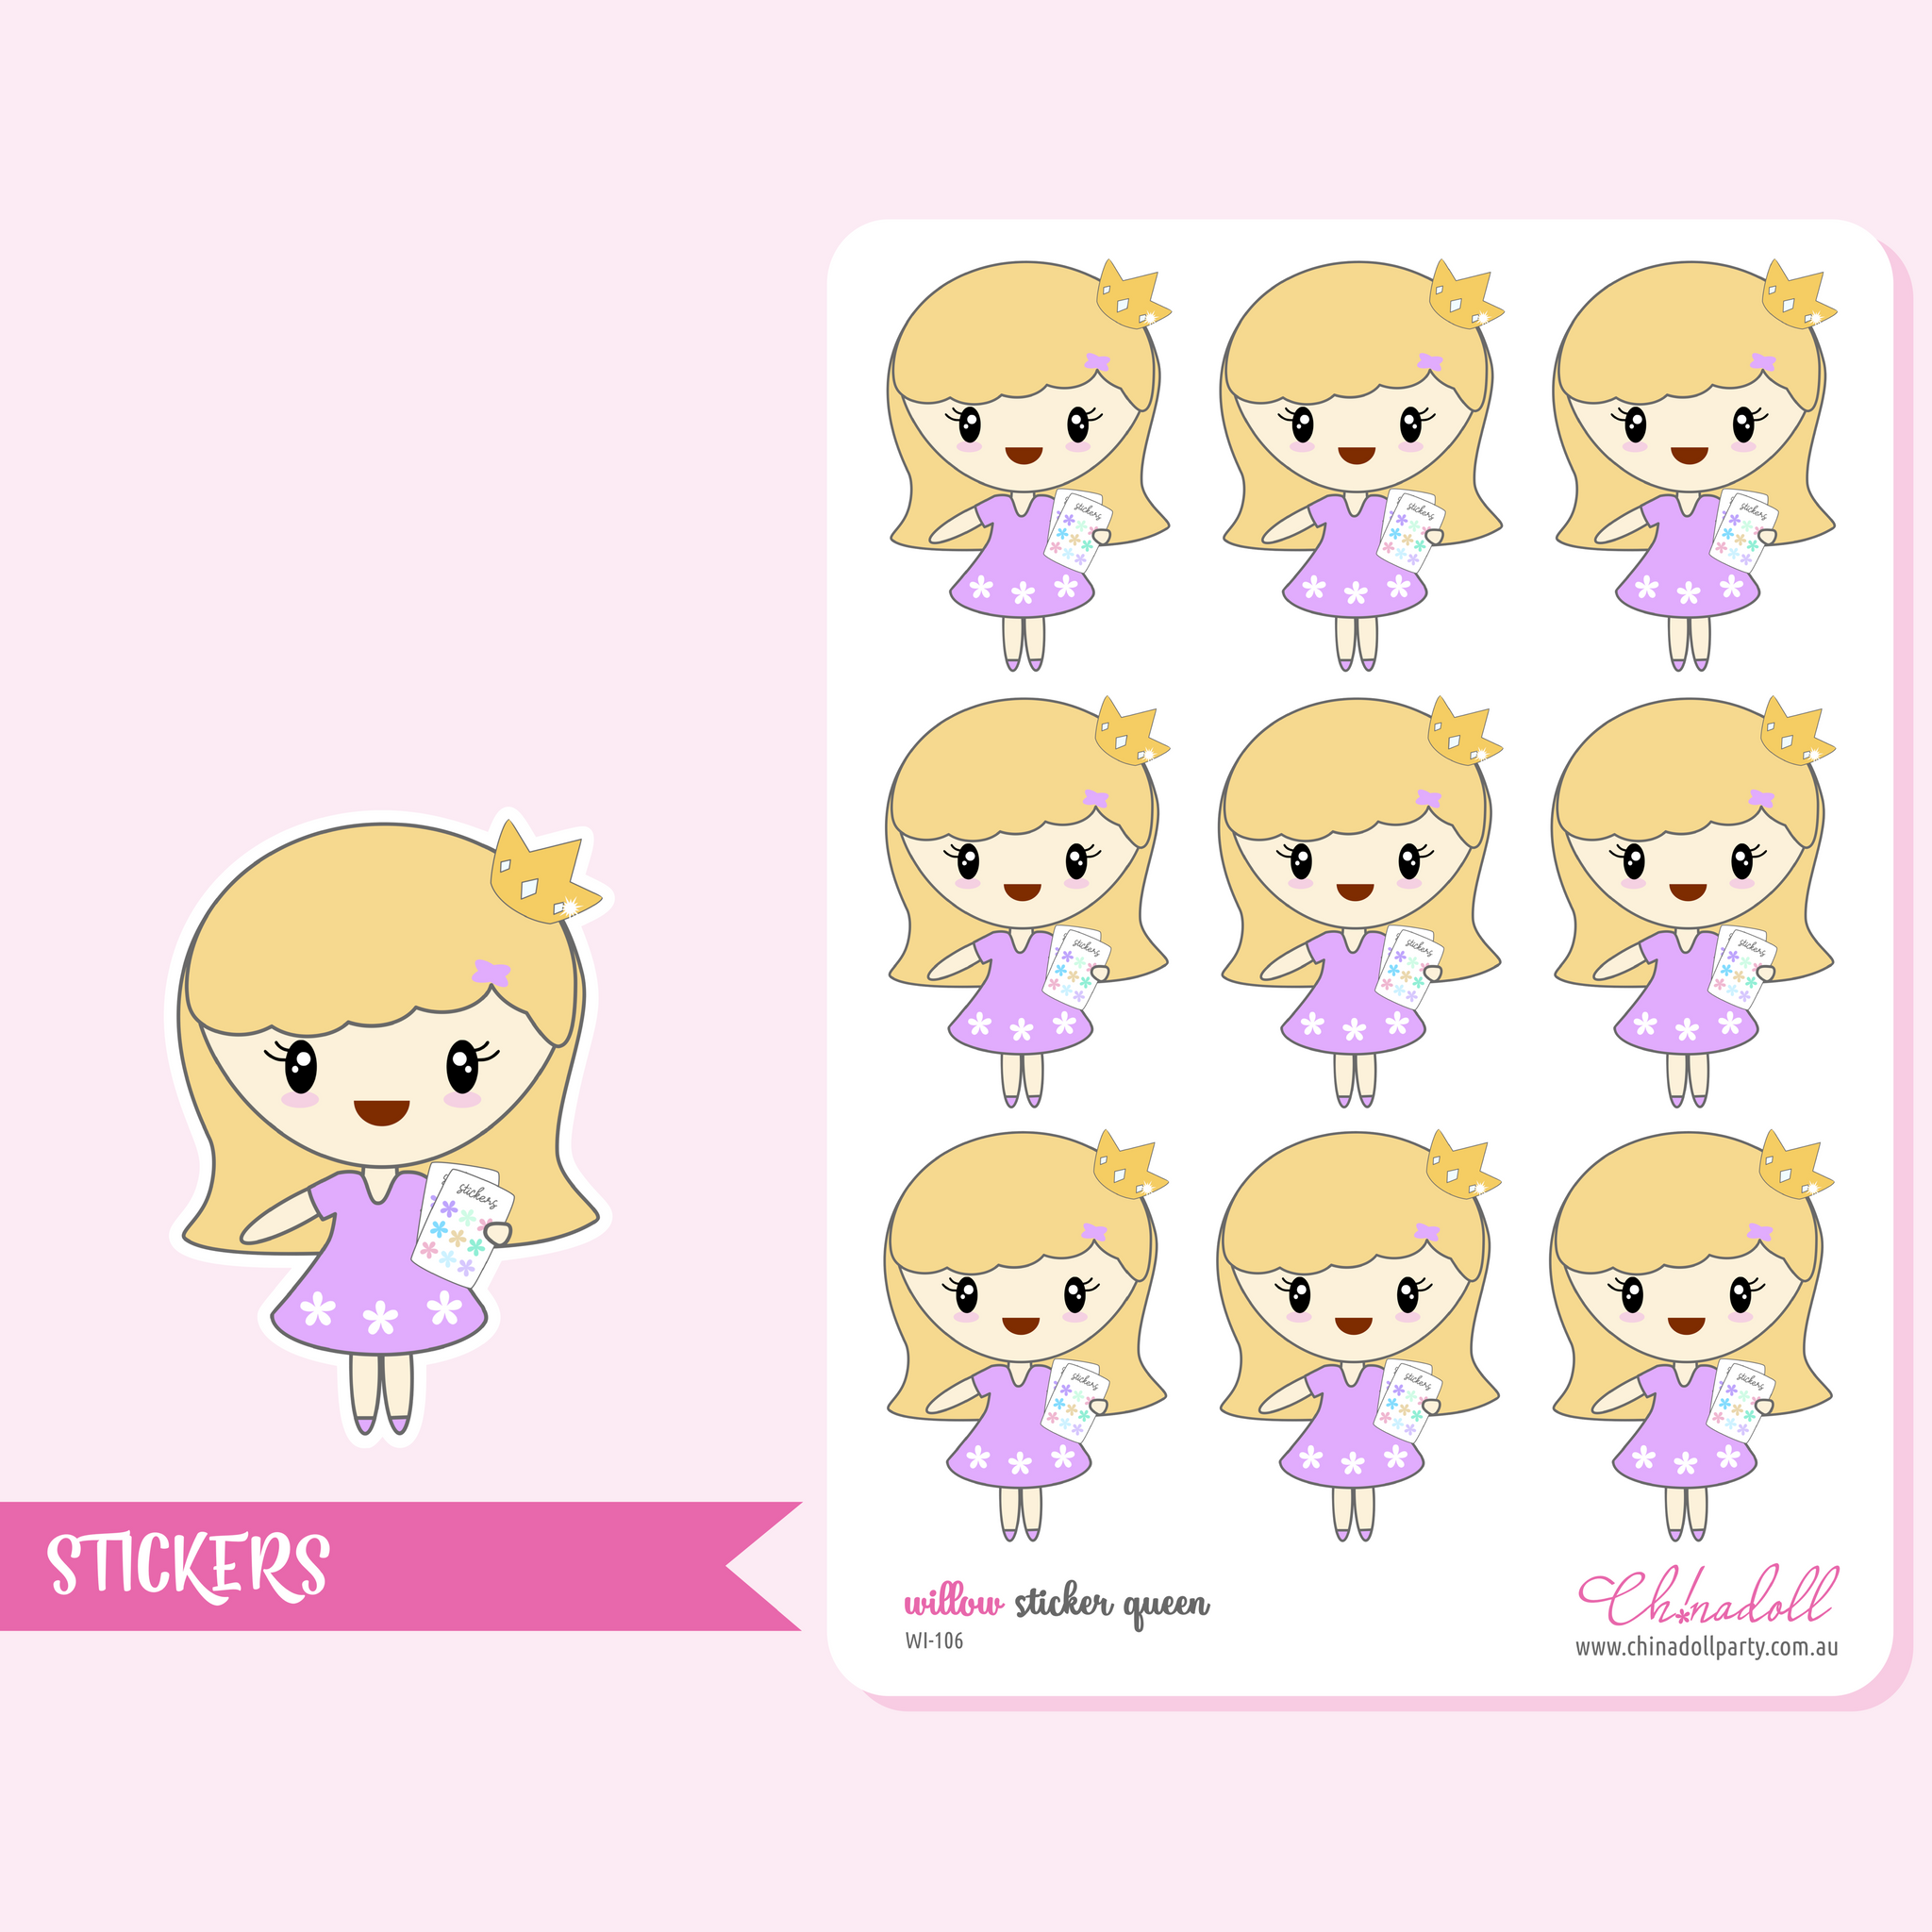 planner girl - willow - sticker queen | sticker sheet | WI-106